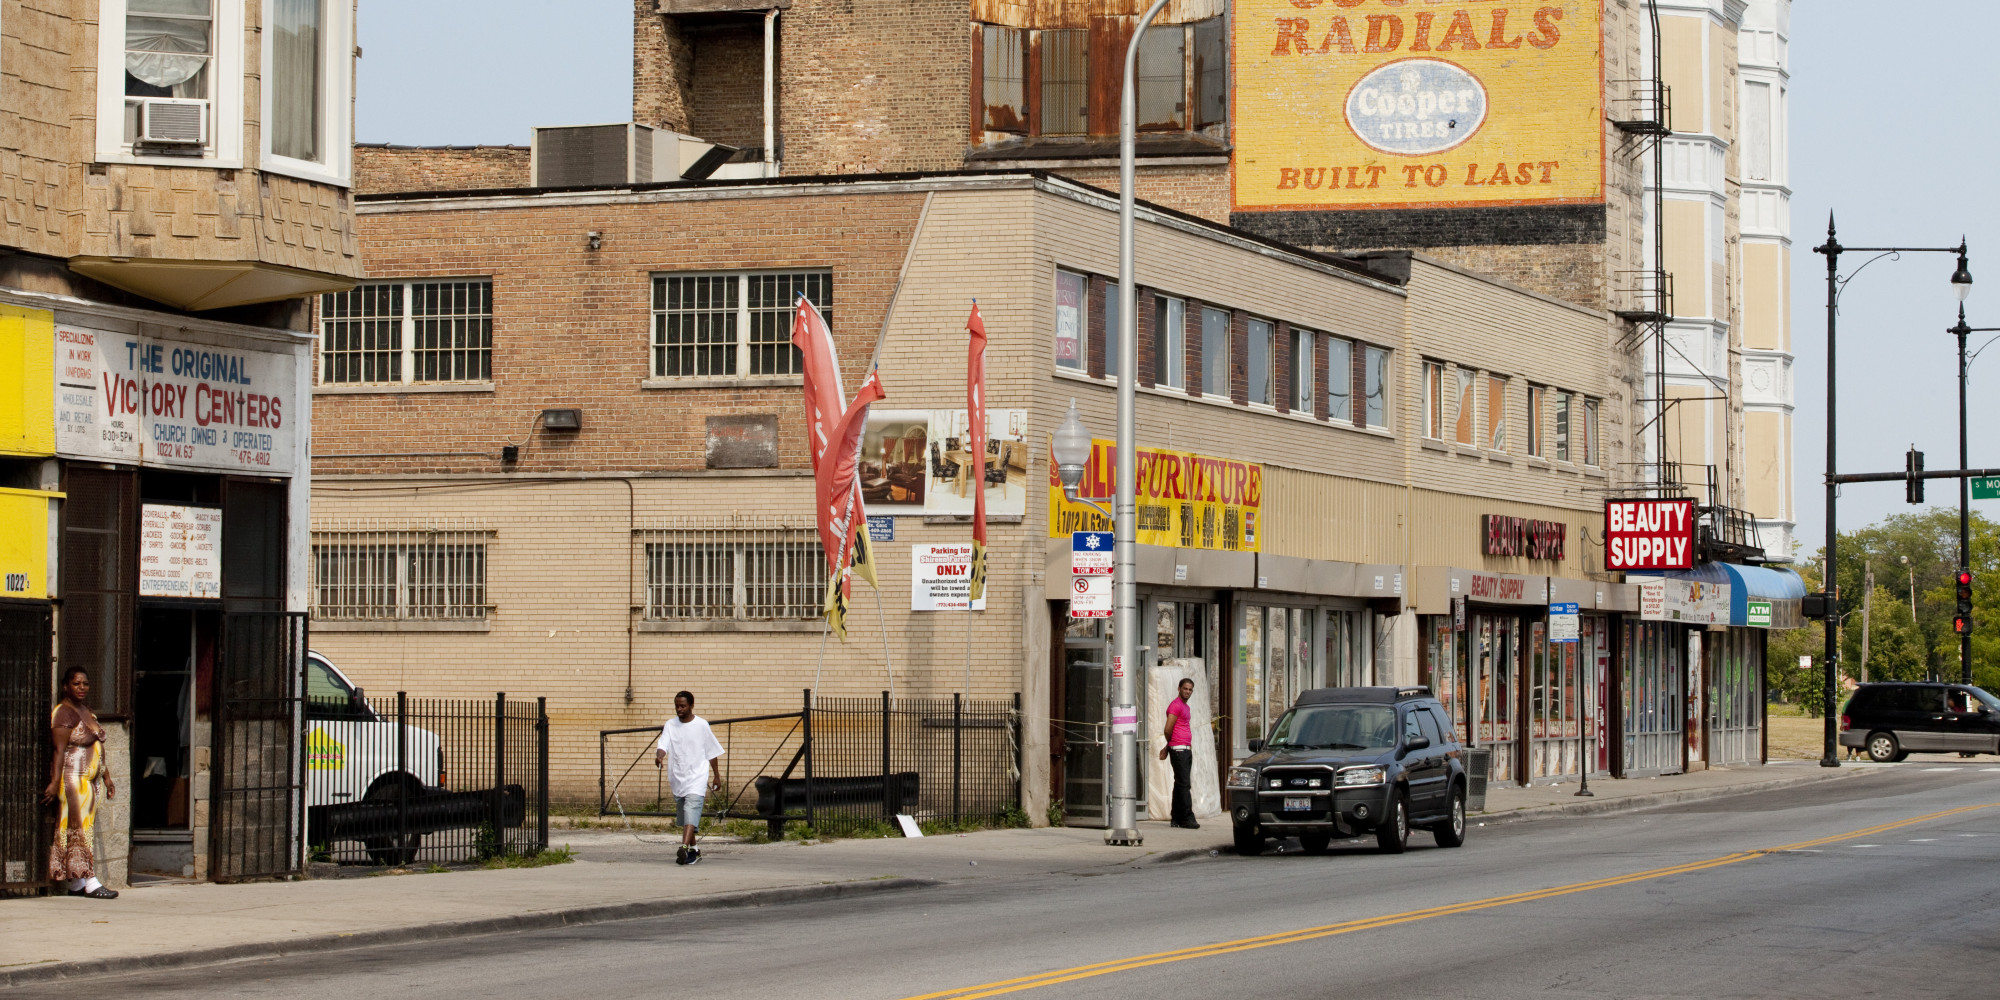 CHICAGO, IL - AUGUST 19: People walk through a commercial area in the Englewood neighborhood, on August 19, 2013 in Chicago, Illinois. Englewood is a depressed neighborhood of Chicago with a high crime rate that has been hit even harder by the sluggish economy. Some people are moving out to the suburbs to escape the violence. (Photo by Melanie Stetson Freeman/The Christian Science Monitor via Getty Images)